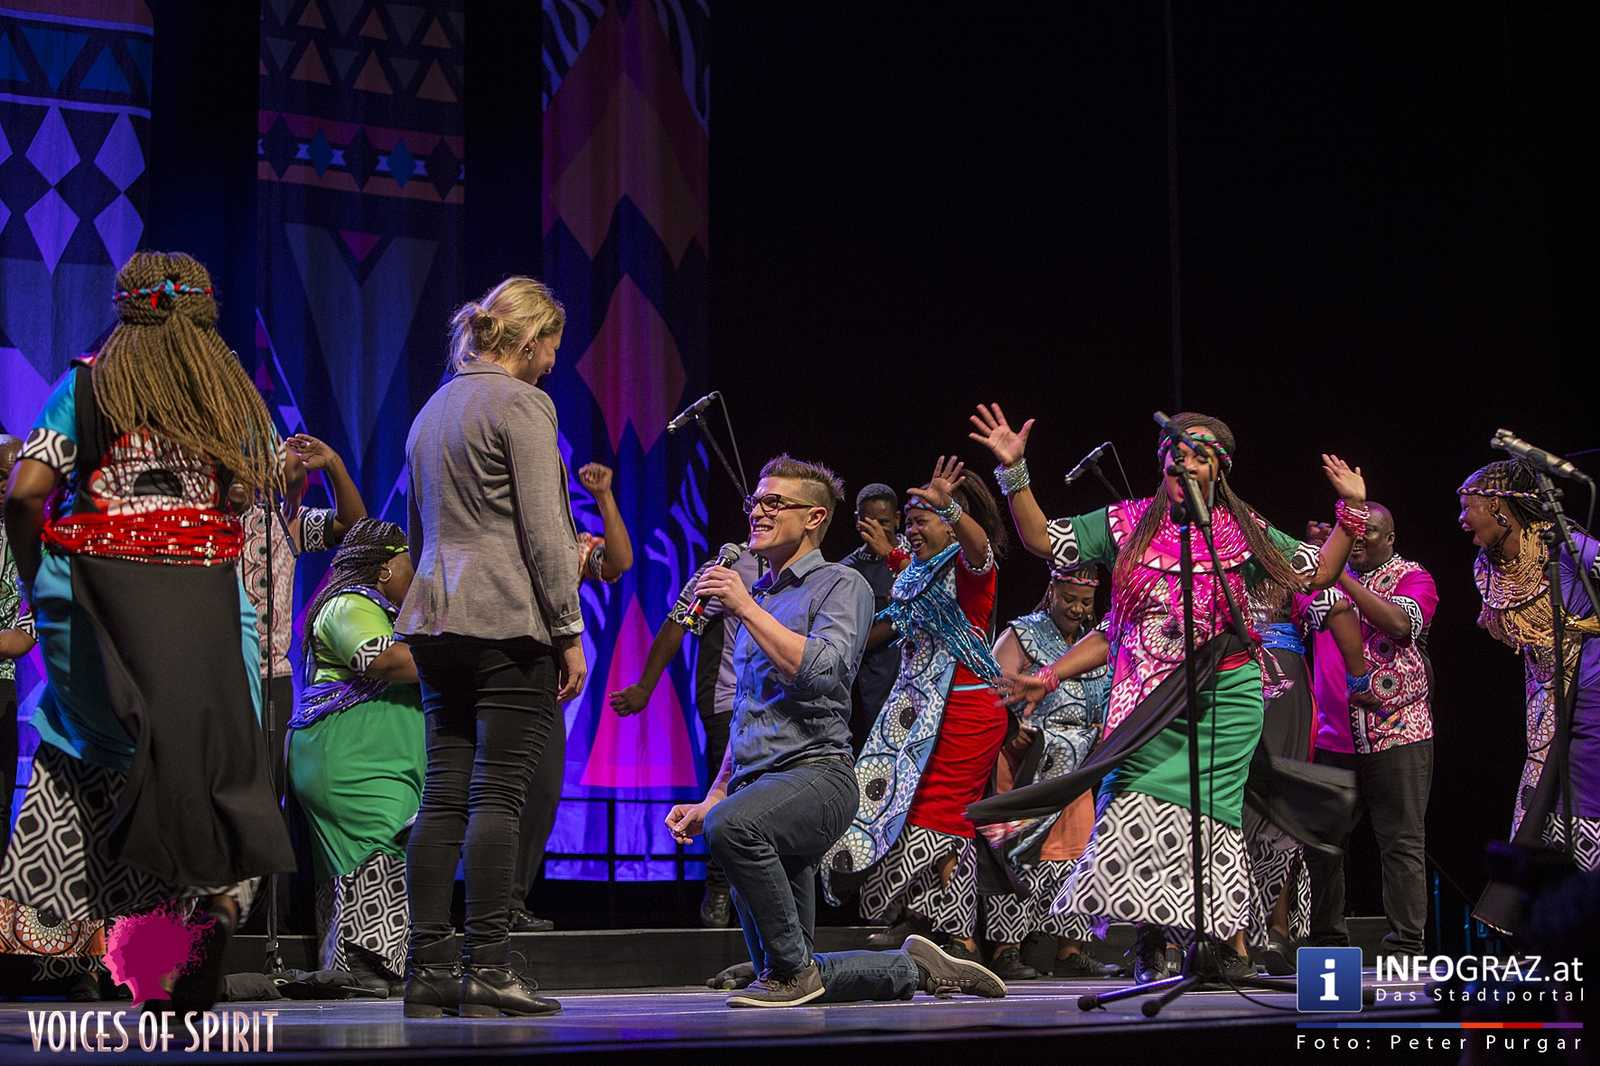 soweto gospel choir internationales chorfestival statdthalle graz voices of spirit eroeffnung festivals 2016 119